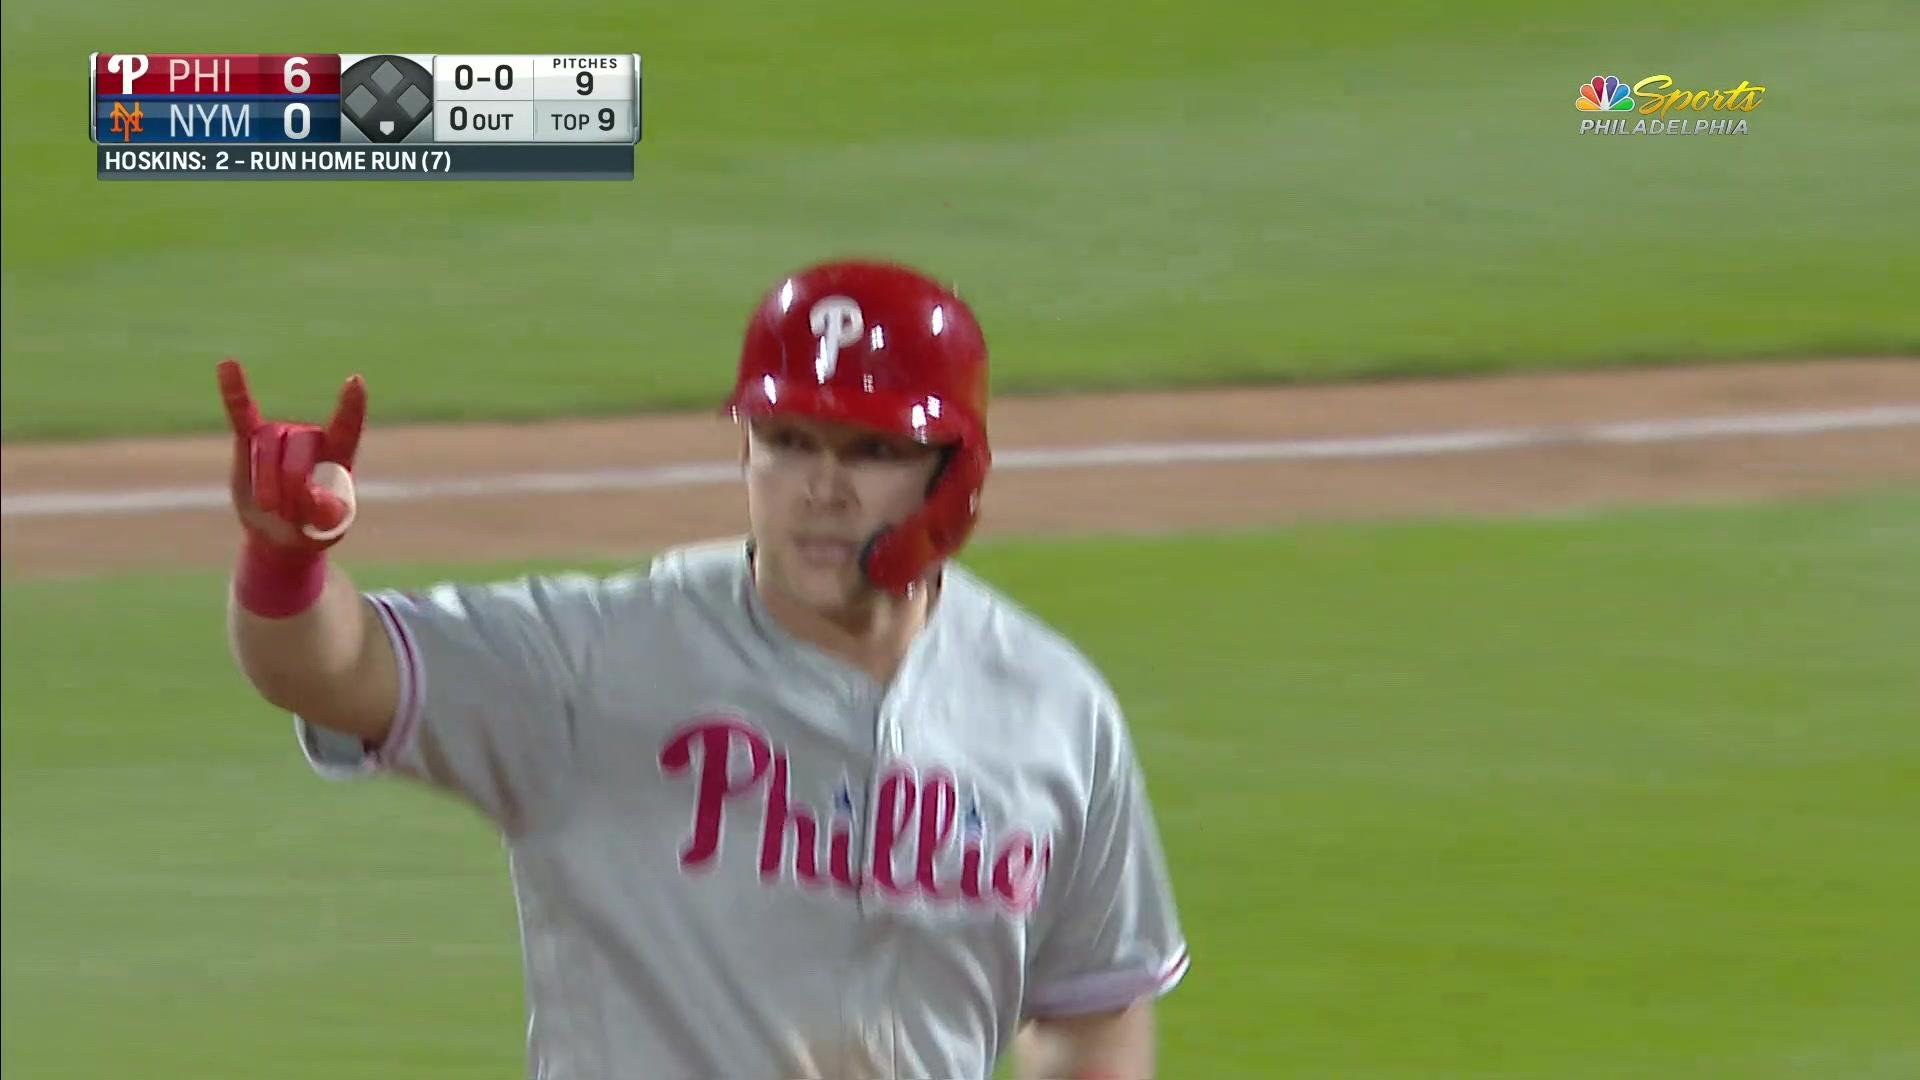 Watch for the Rhys Hoskins home run, stay for the 34 second trot